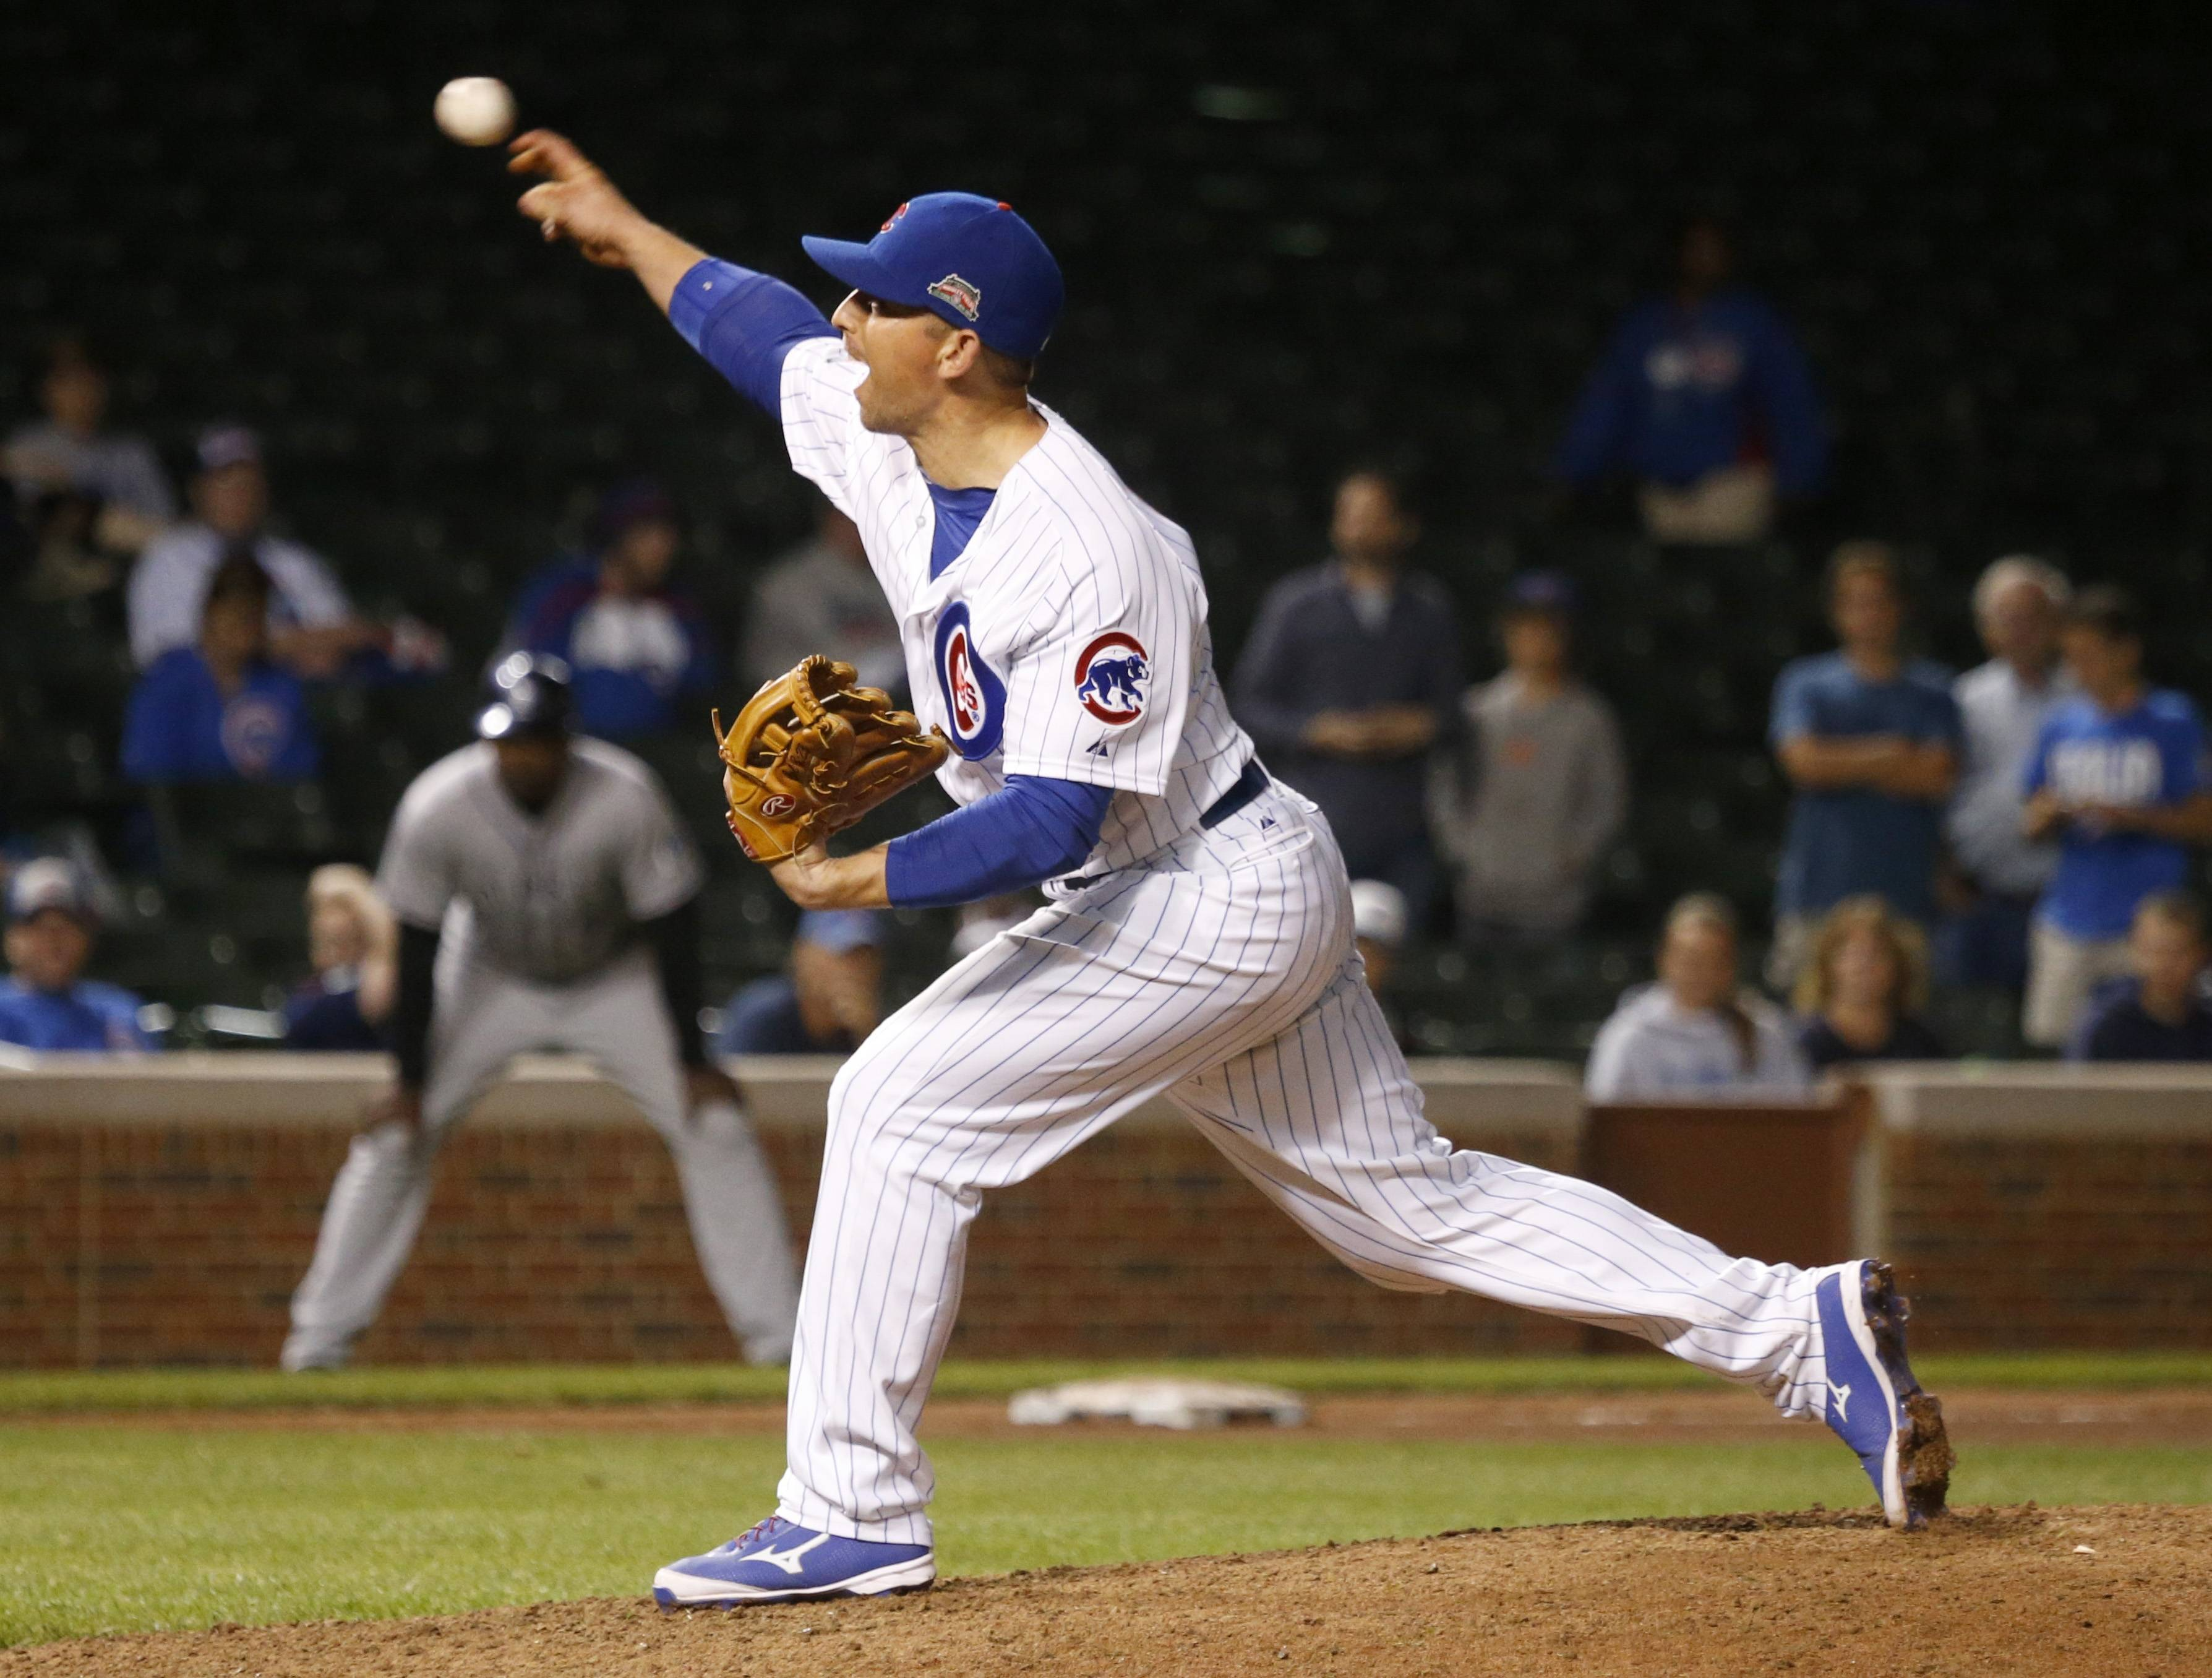 Chicago Cubs back up catcher John Baker, pitches in relief during the 16th inning of a baseball game against the Colorado Rockies, early Wednesday, July 30, 2014, in Chicago. Baker score the winning run off a sacrifice fly by Starlin Castro, in the bottom of the inning giving the Cubs' a 4-3 victory. (AP Photo/Charles Rex Arbogast)